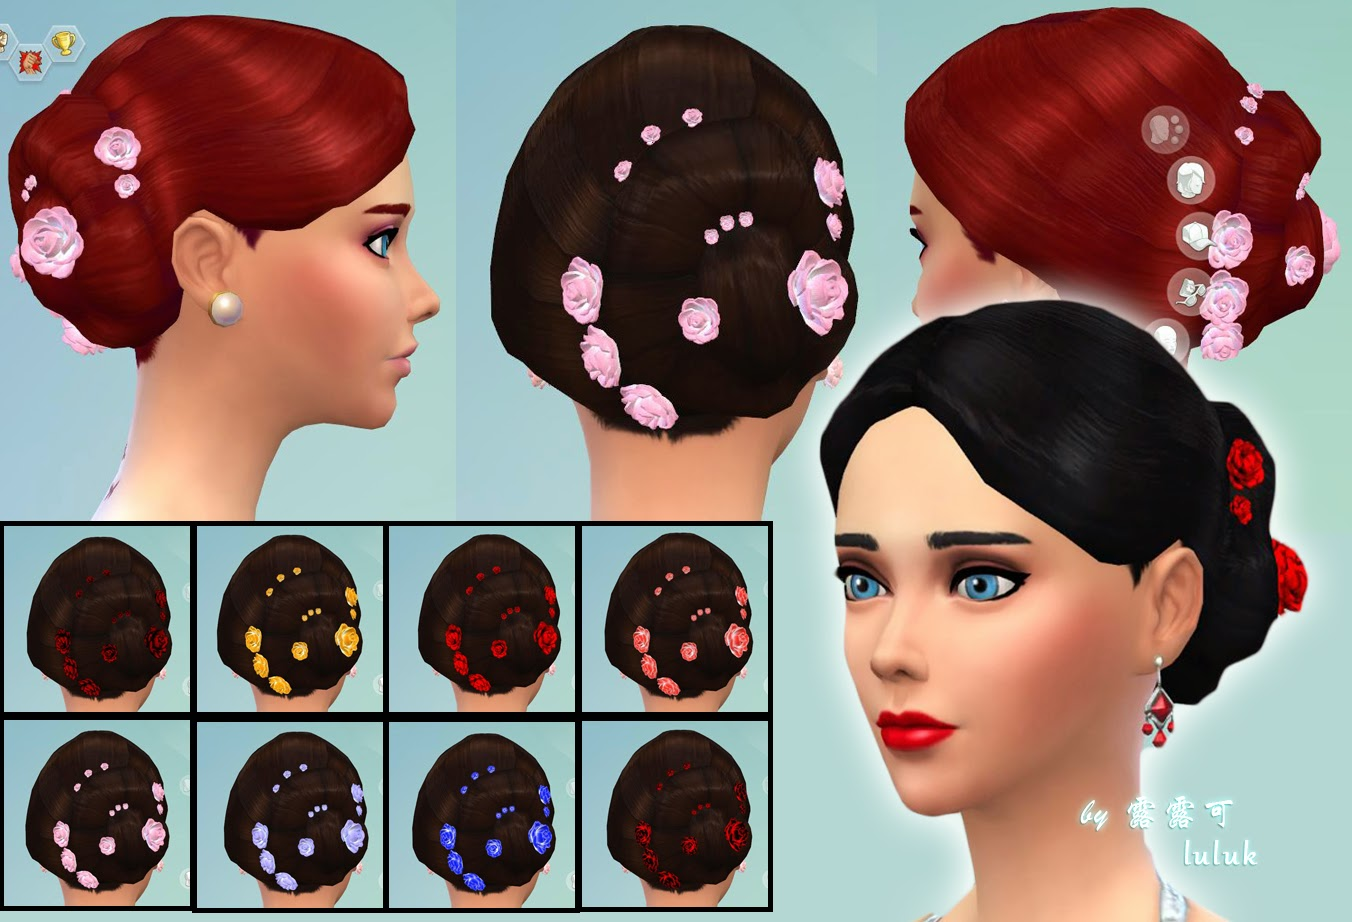 The sims 4 hair accessories - Hair For Party And Accessories By Luluk The Sims Resource